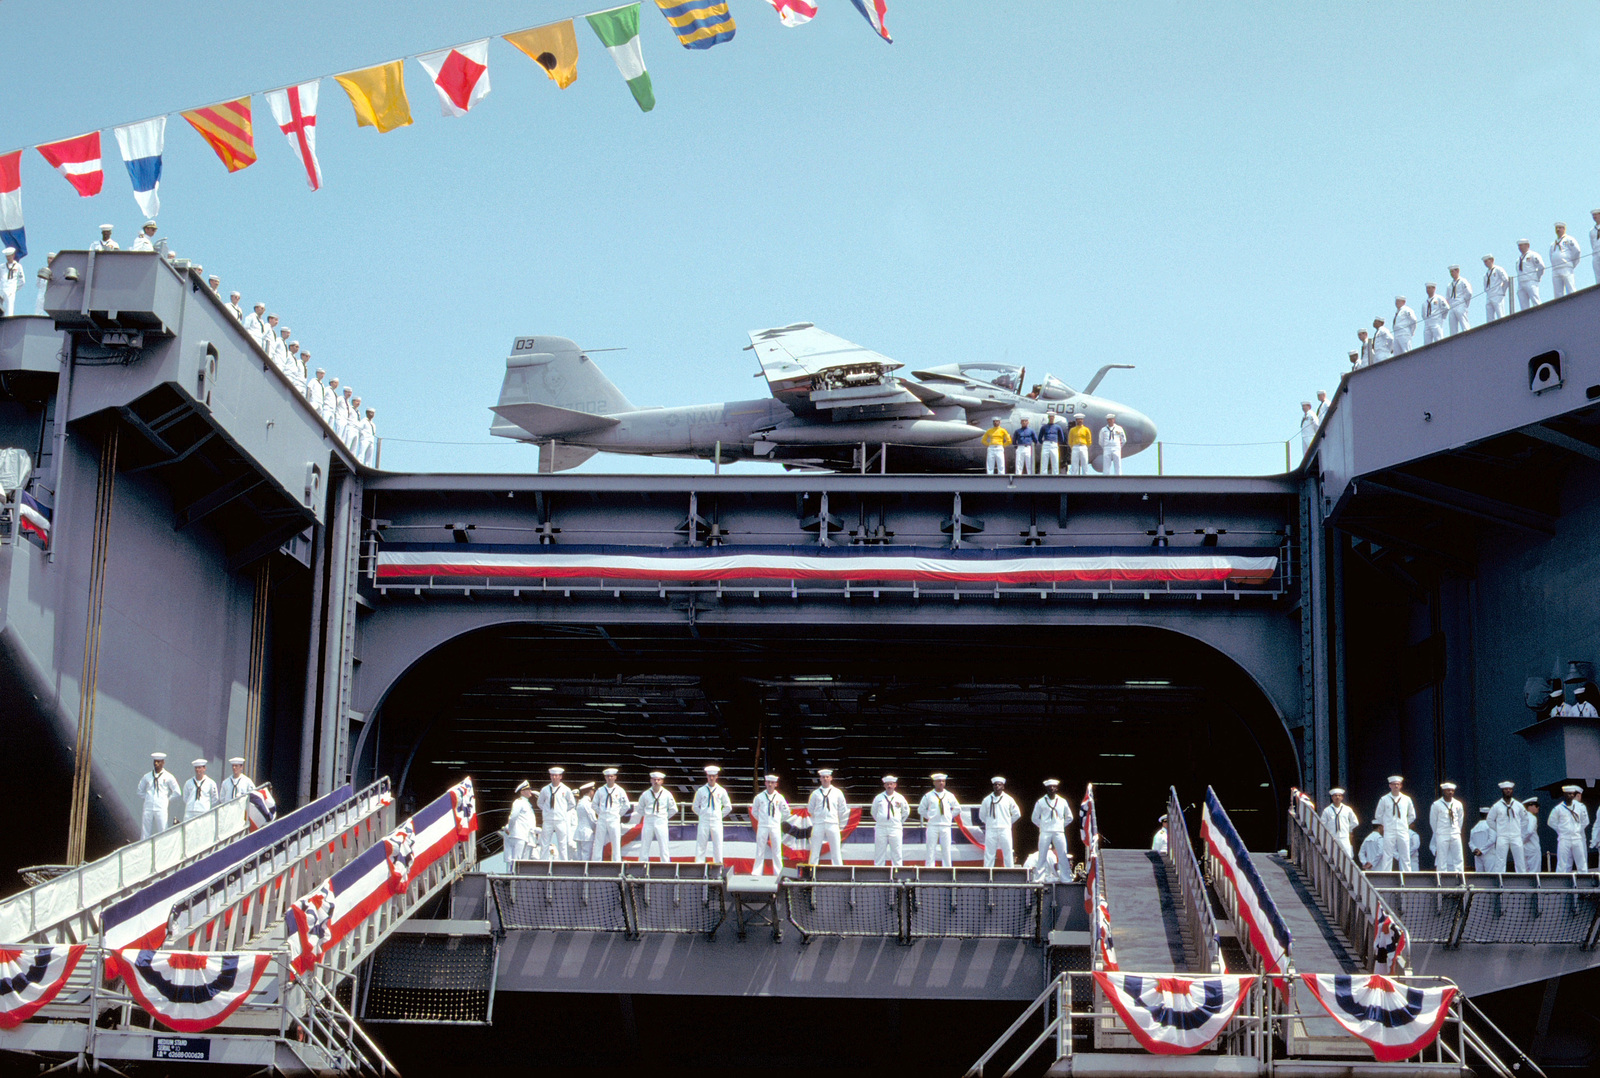 Crew members man the rails aboard the nuclear-powered aircraft carrier USS GEORGE WASHINGTON (CVN-73) during the vessel's commissioning ceremony. An A-6E Intruder aircraft is parked above the hangar bay on the flight deck